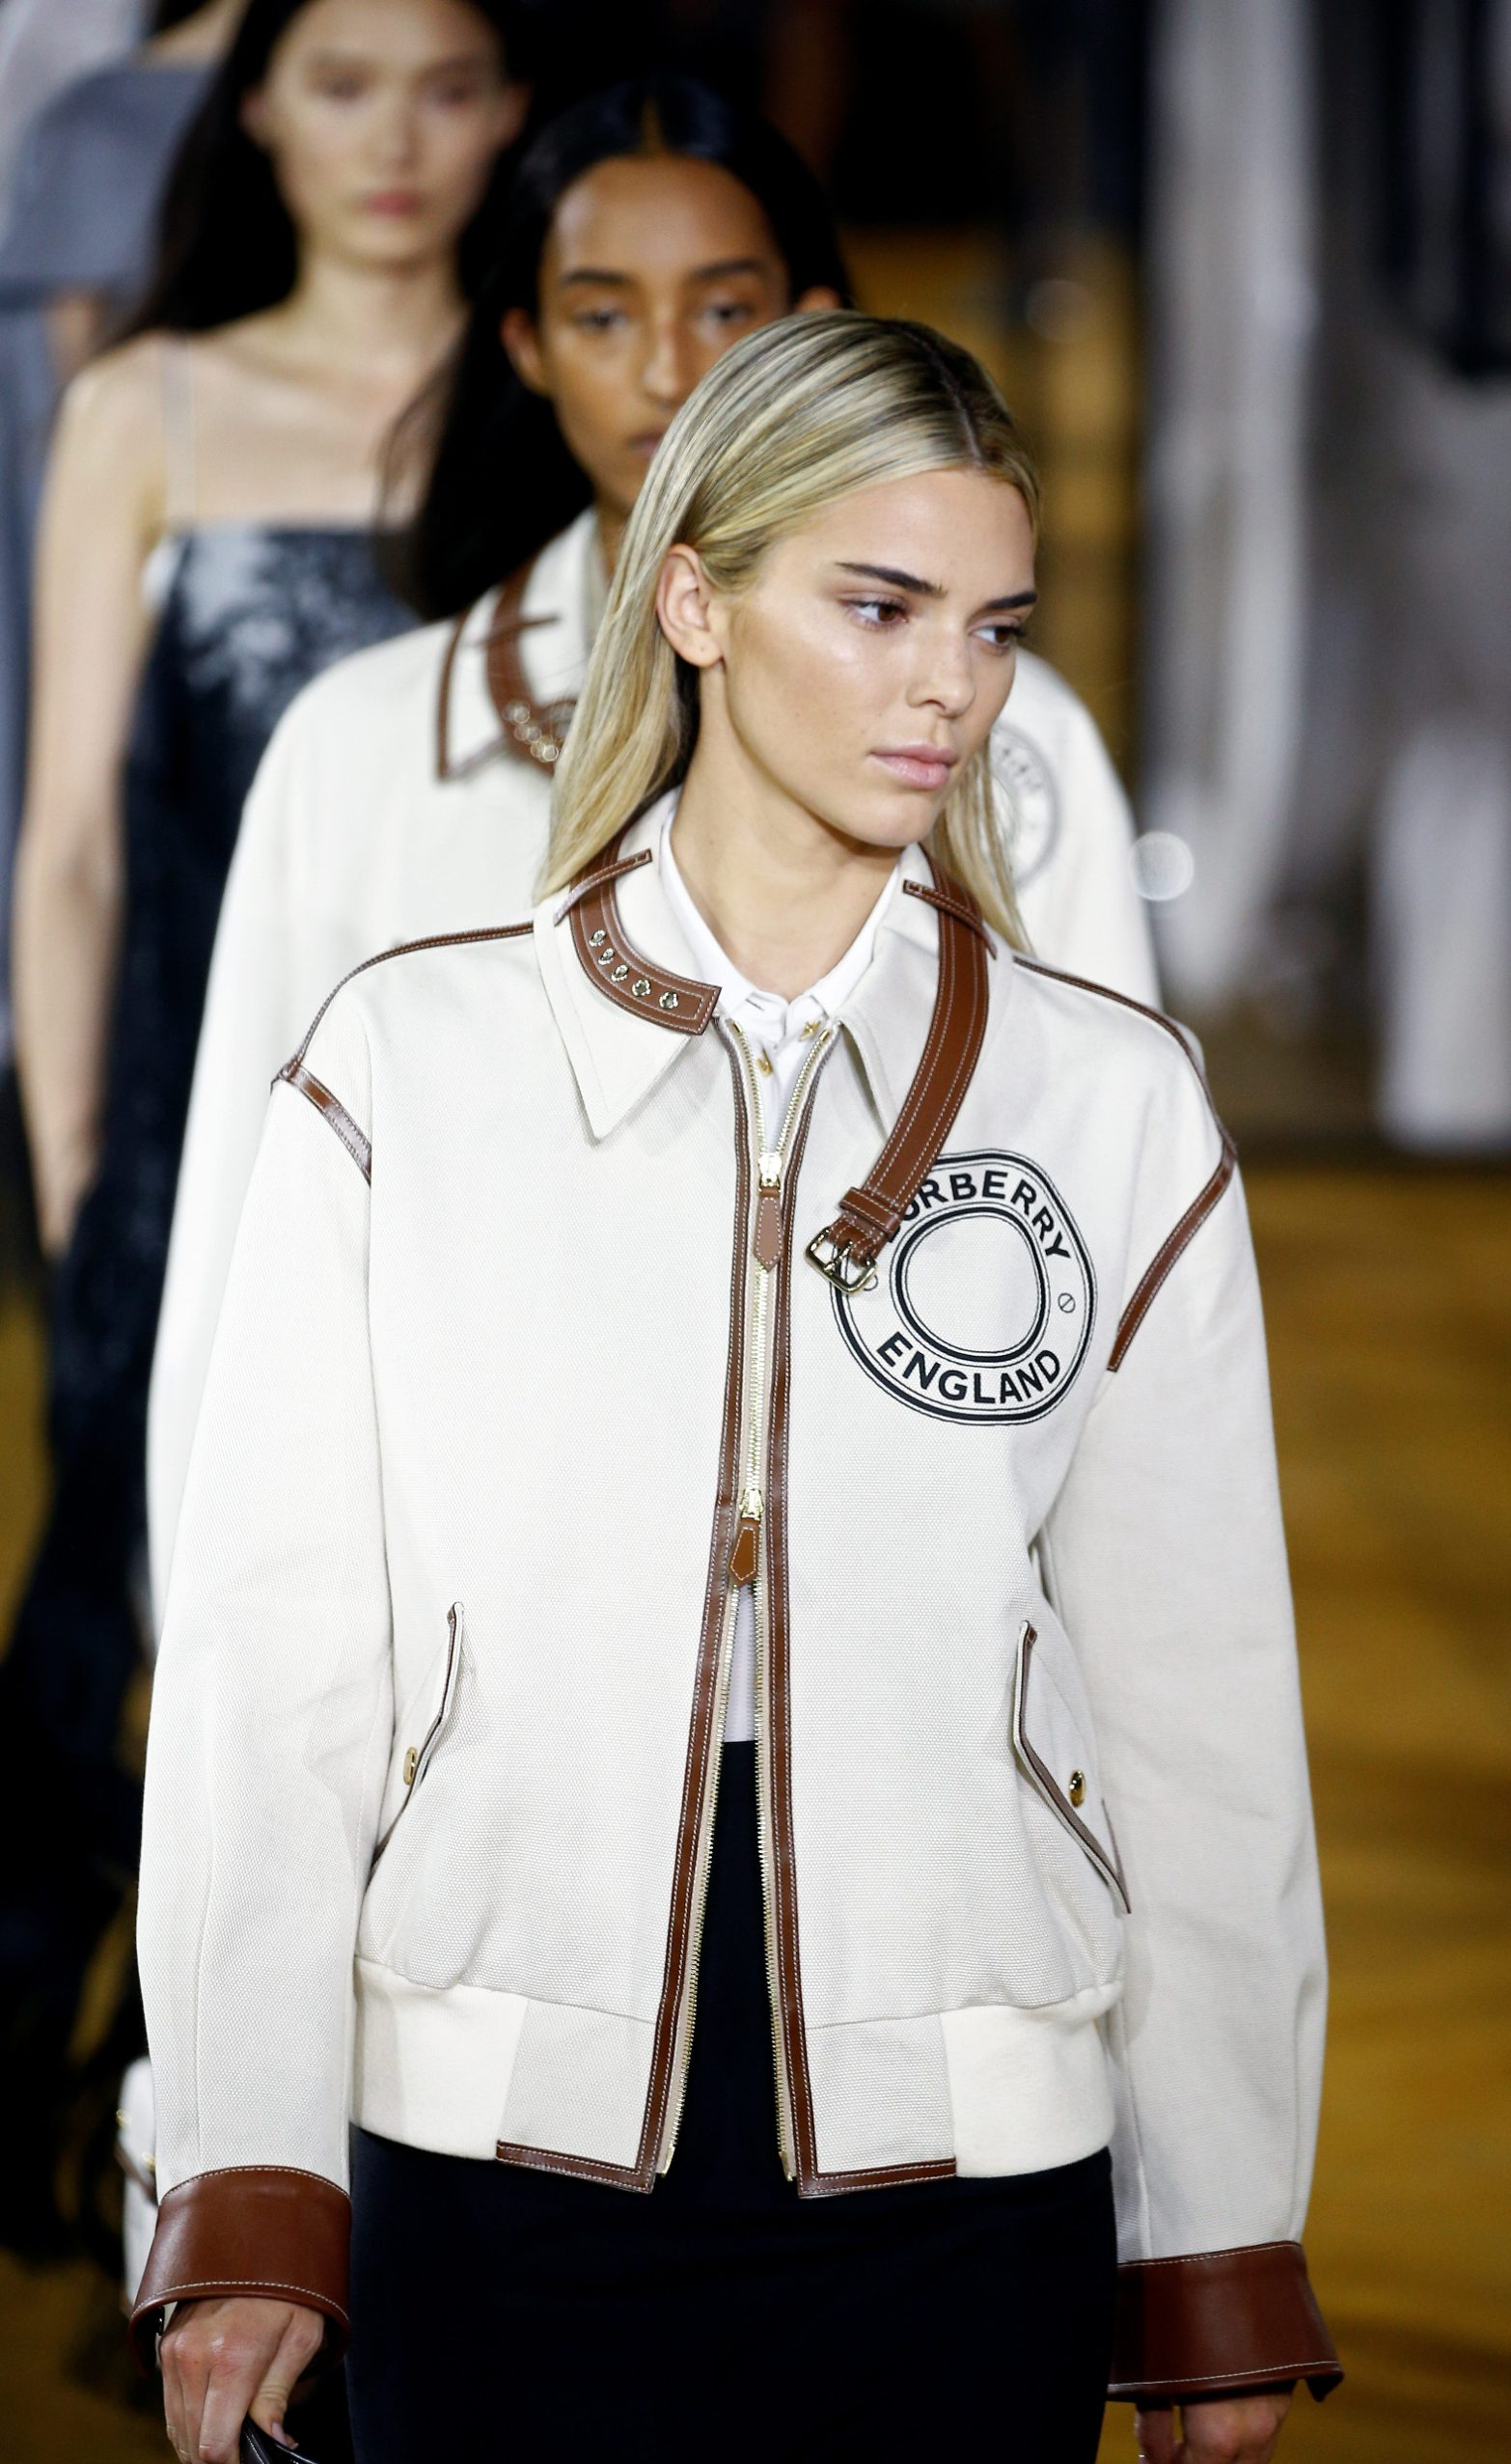 Model Kendall Jenner presents a creation during the Burberry catwalk show at London Fashion Week in London, Britain, September 16, 2019. REUTERS/Henry Nicholls